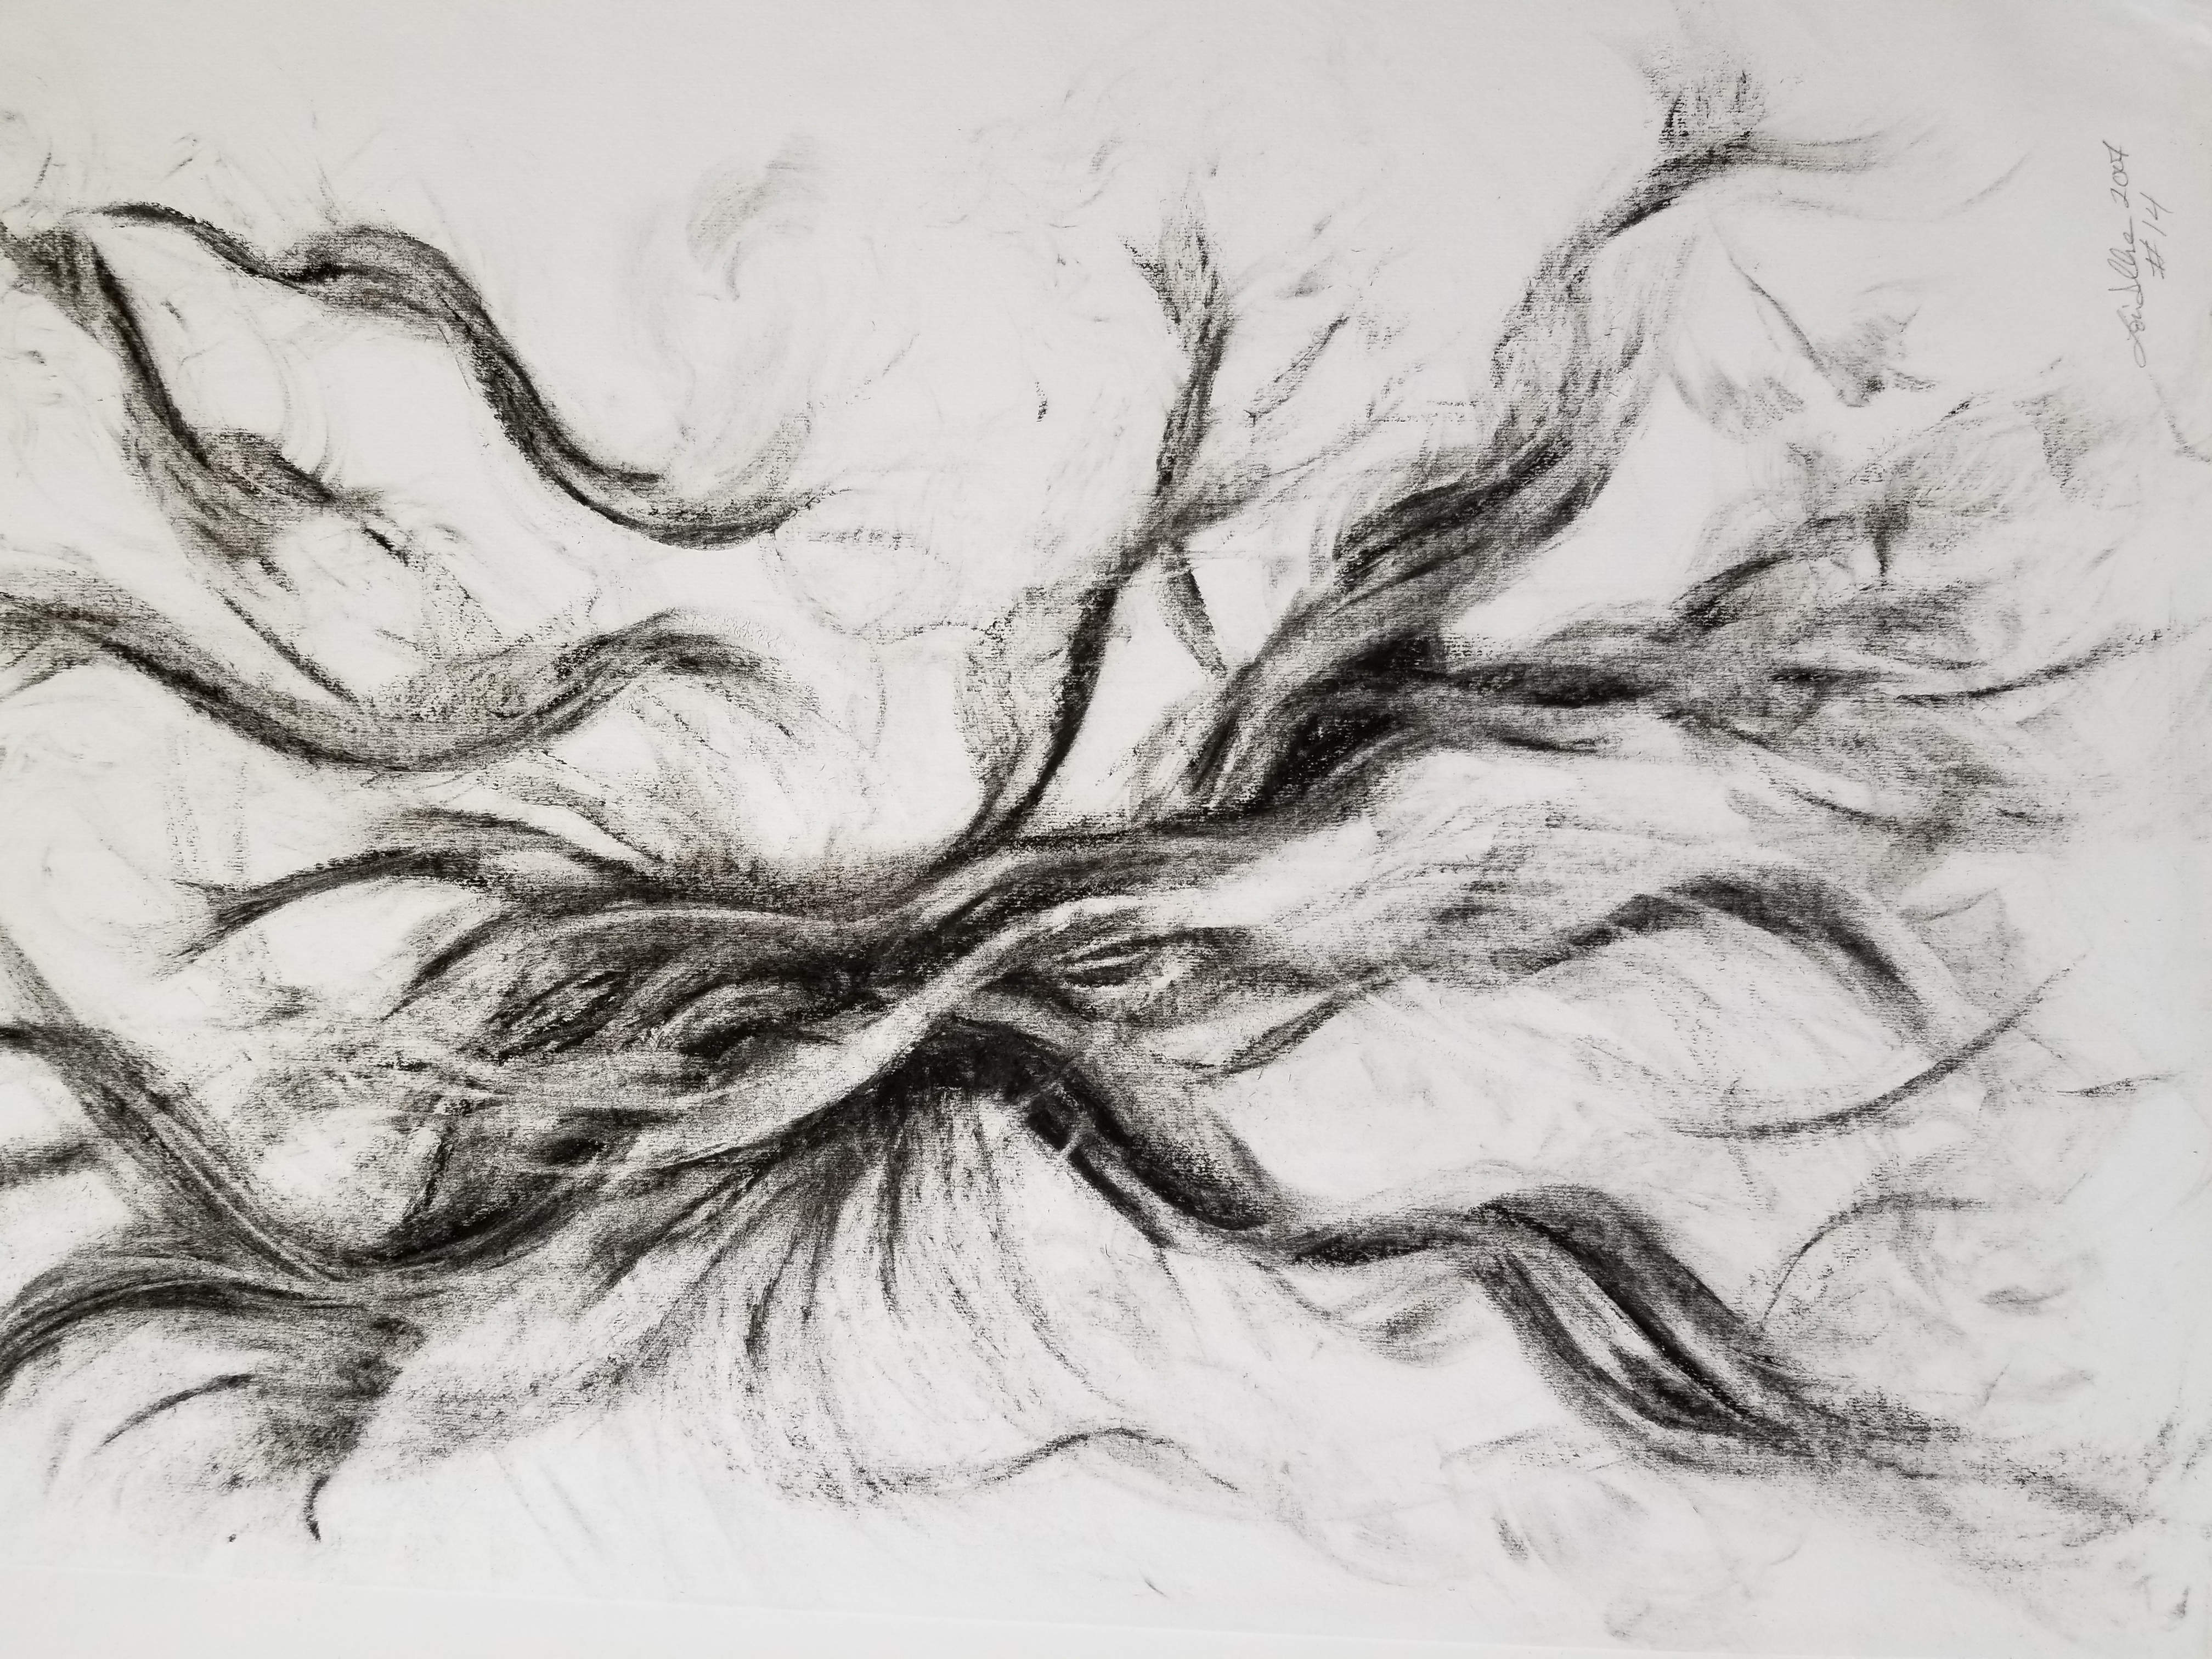 A Study of Charcoal on Rice Paper